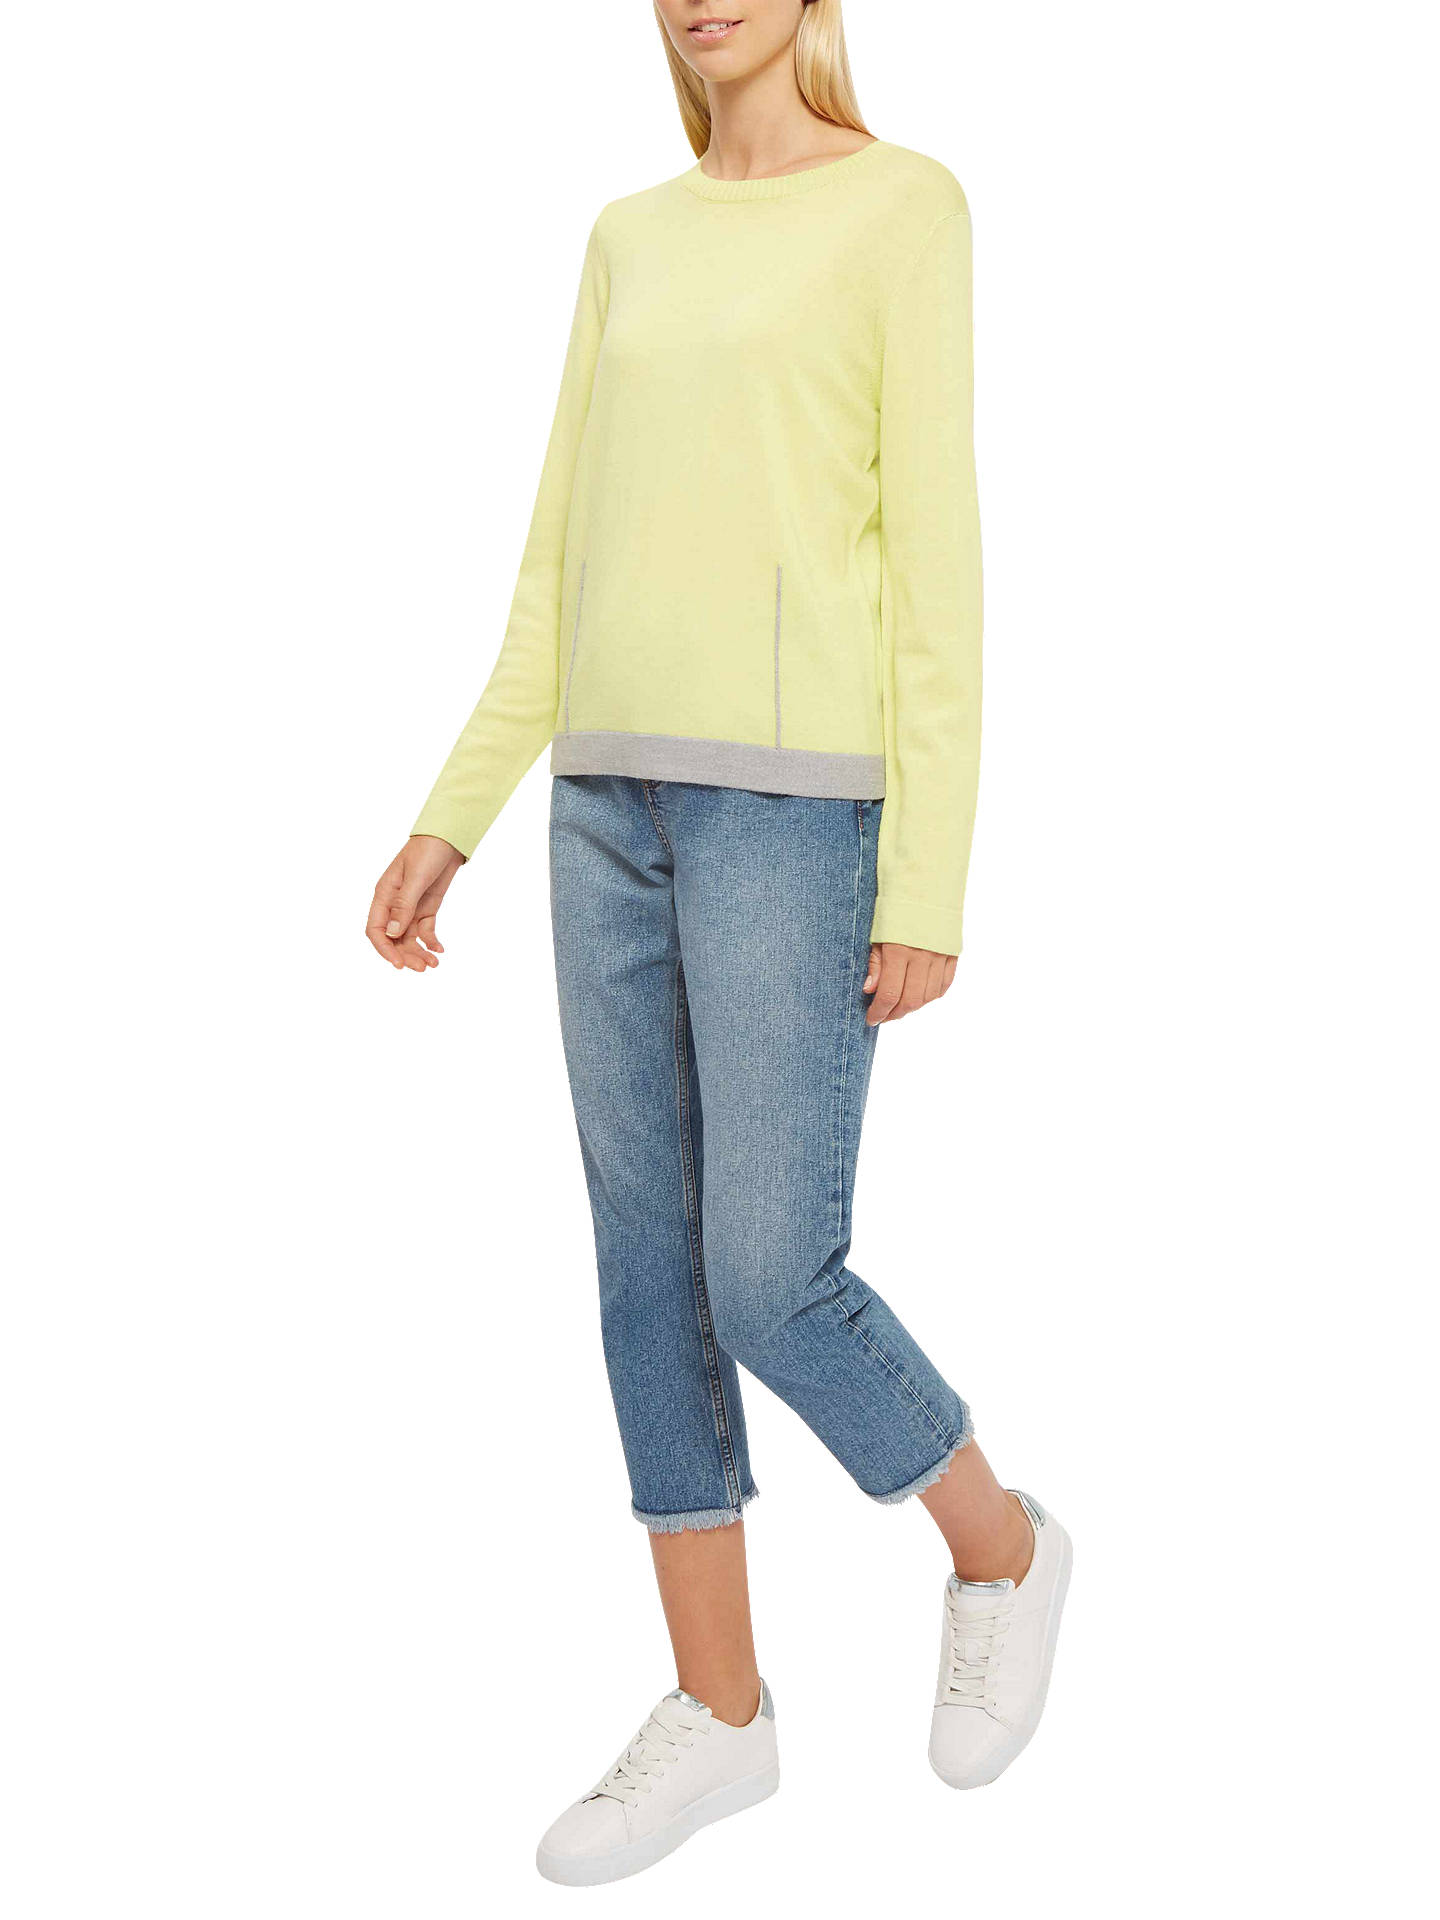 BuyJaeger Wool Gauge Dart Jumper, Lime, XS Online at johnlewis.com